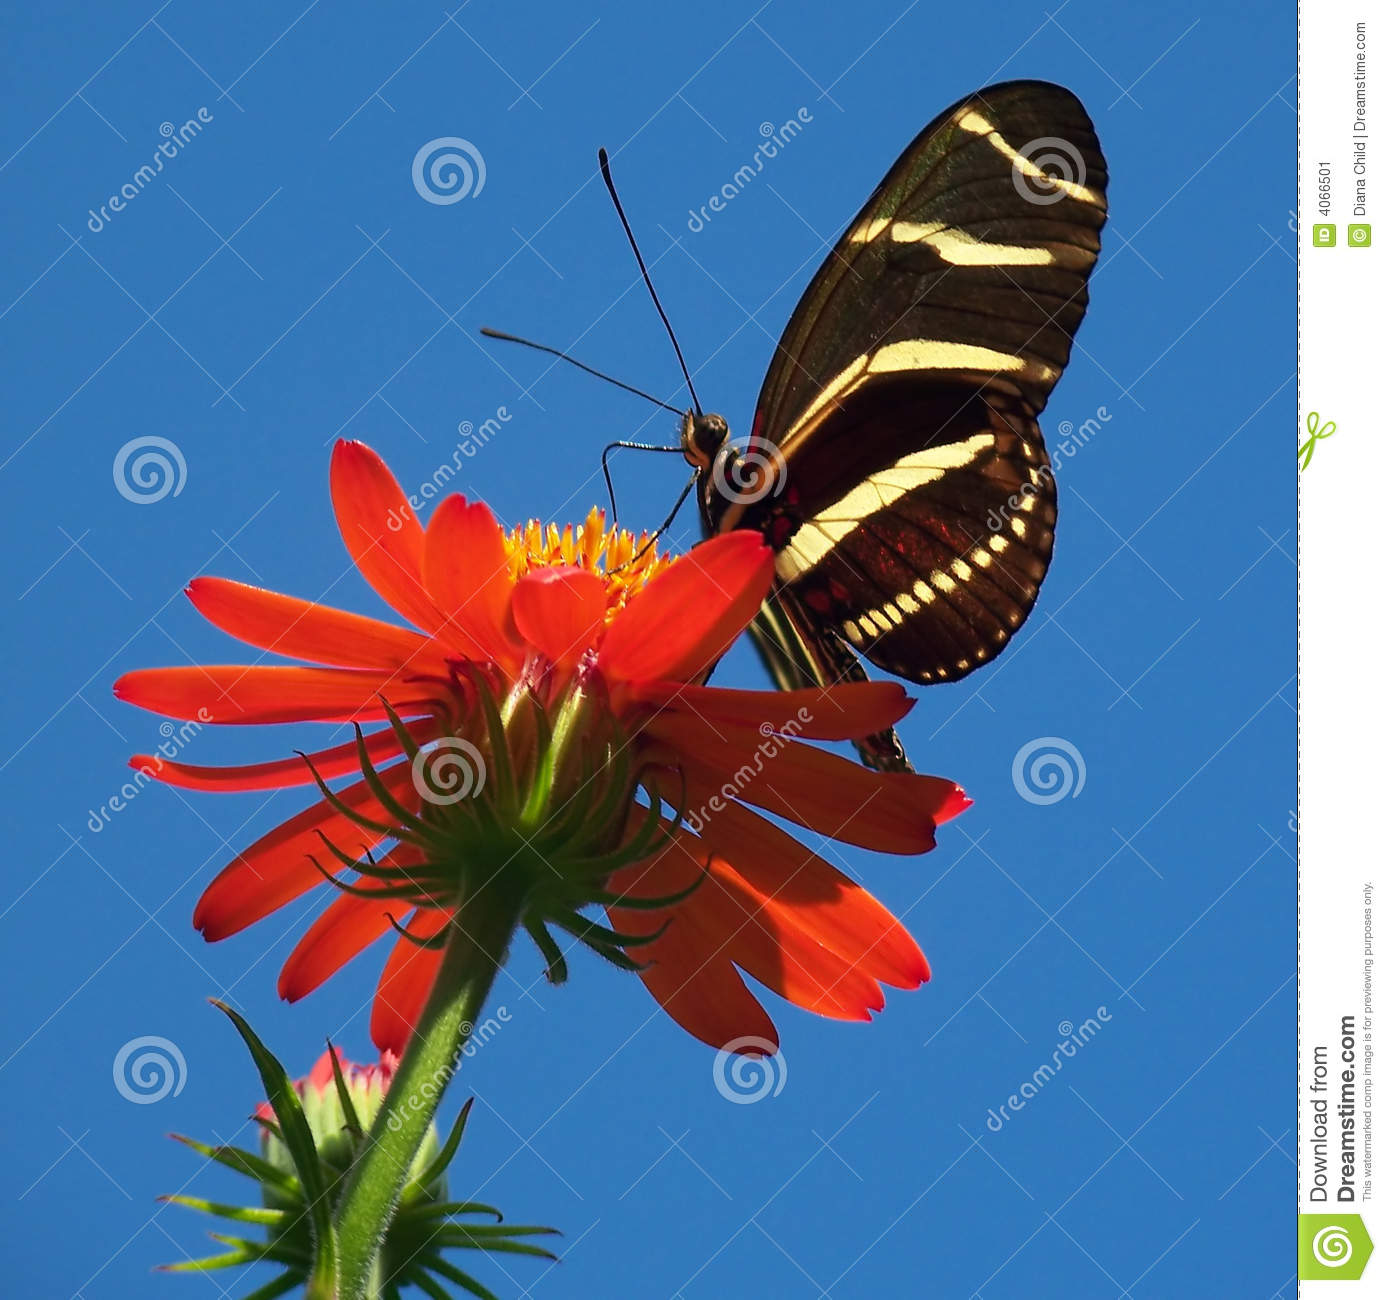 Butterfly on bright red flower